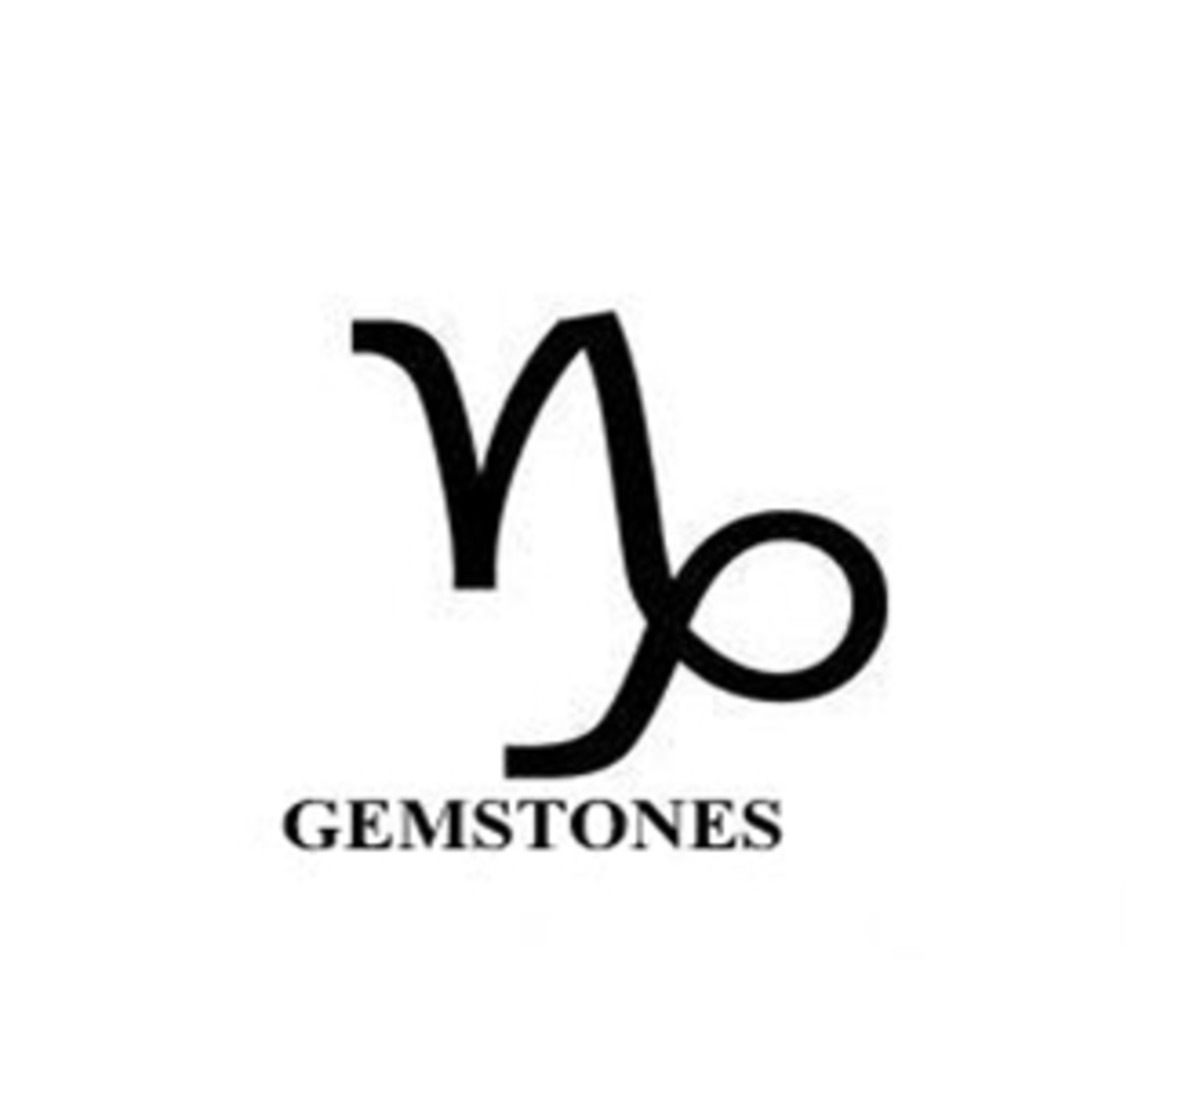 Capricorn Zodiac Sign Gemstones